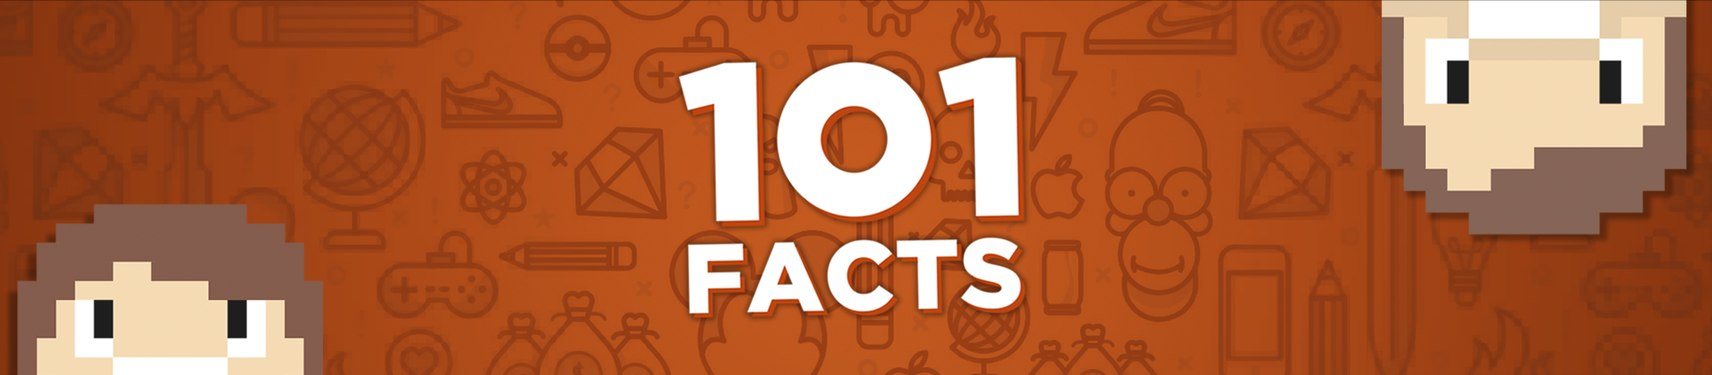 101 Facts